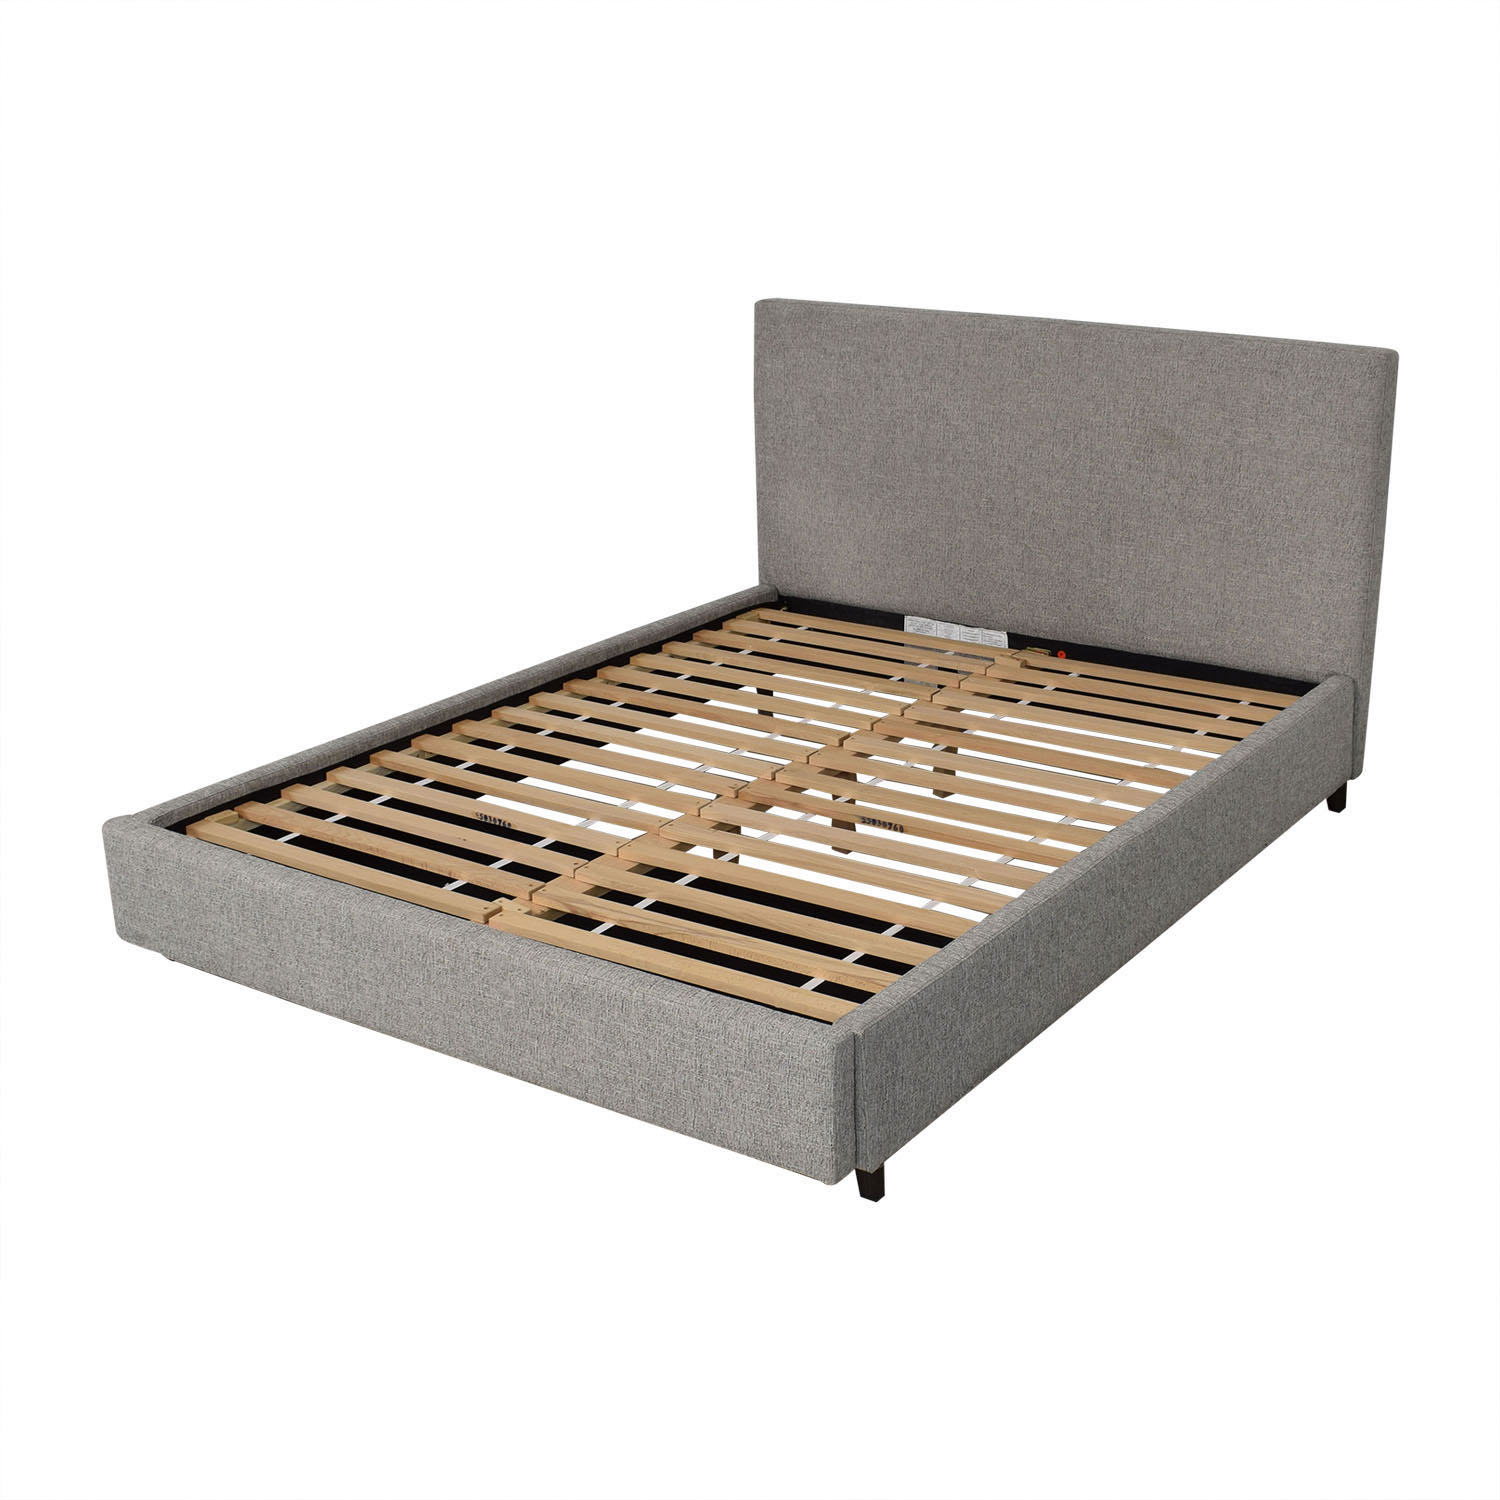 West Elm West Elm Contemporary Upholstered Storage Bed Queen dimensions